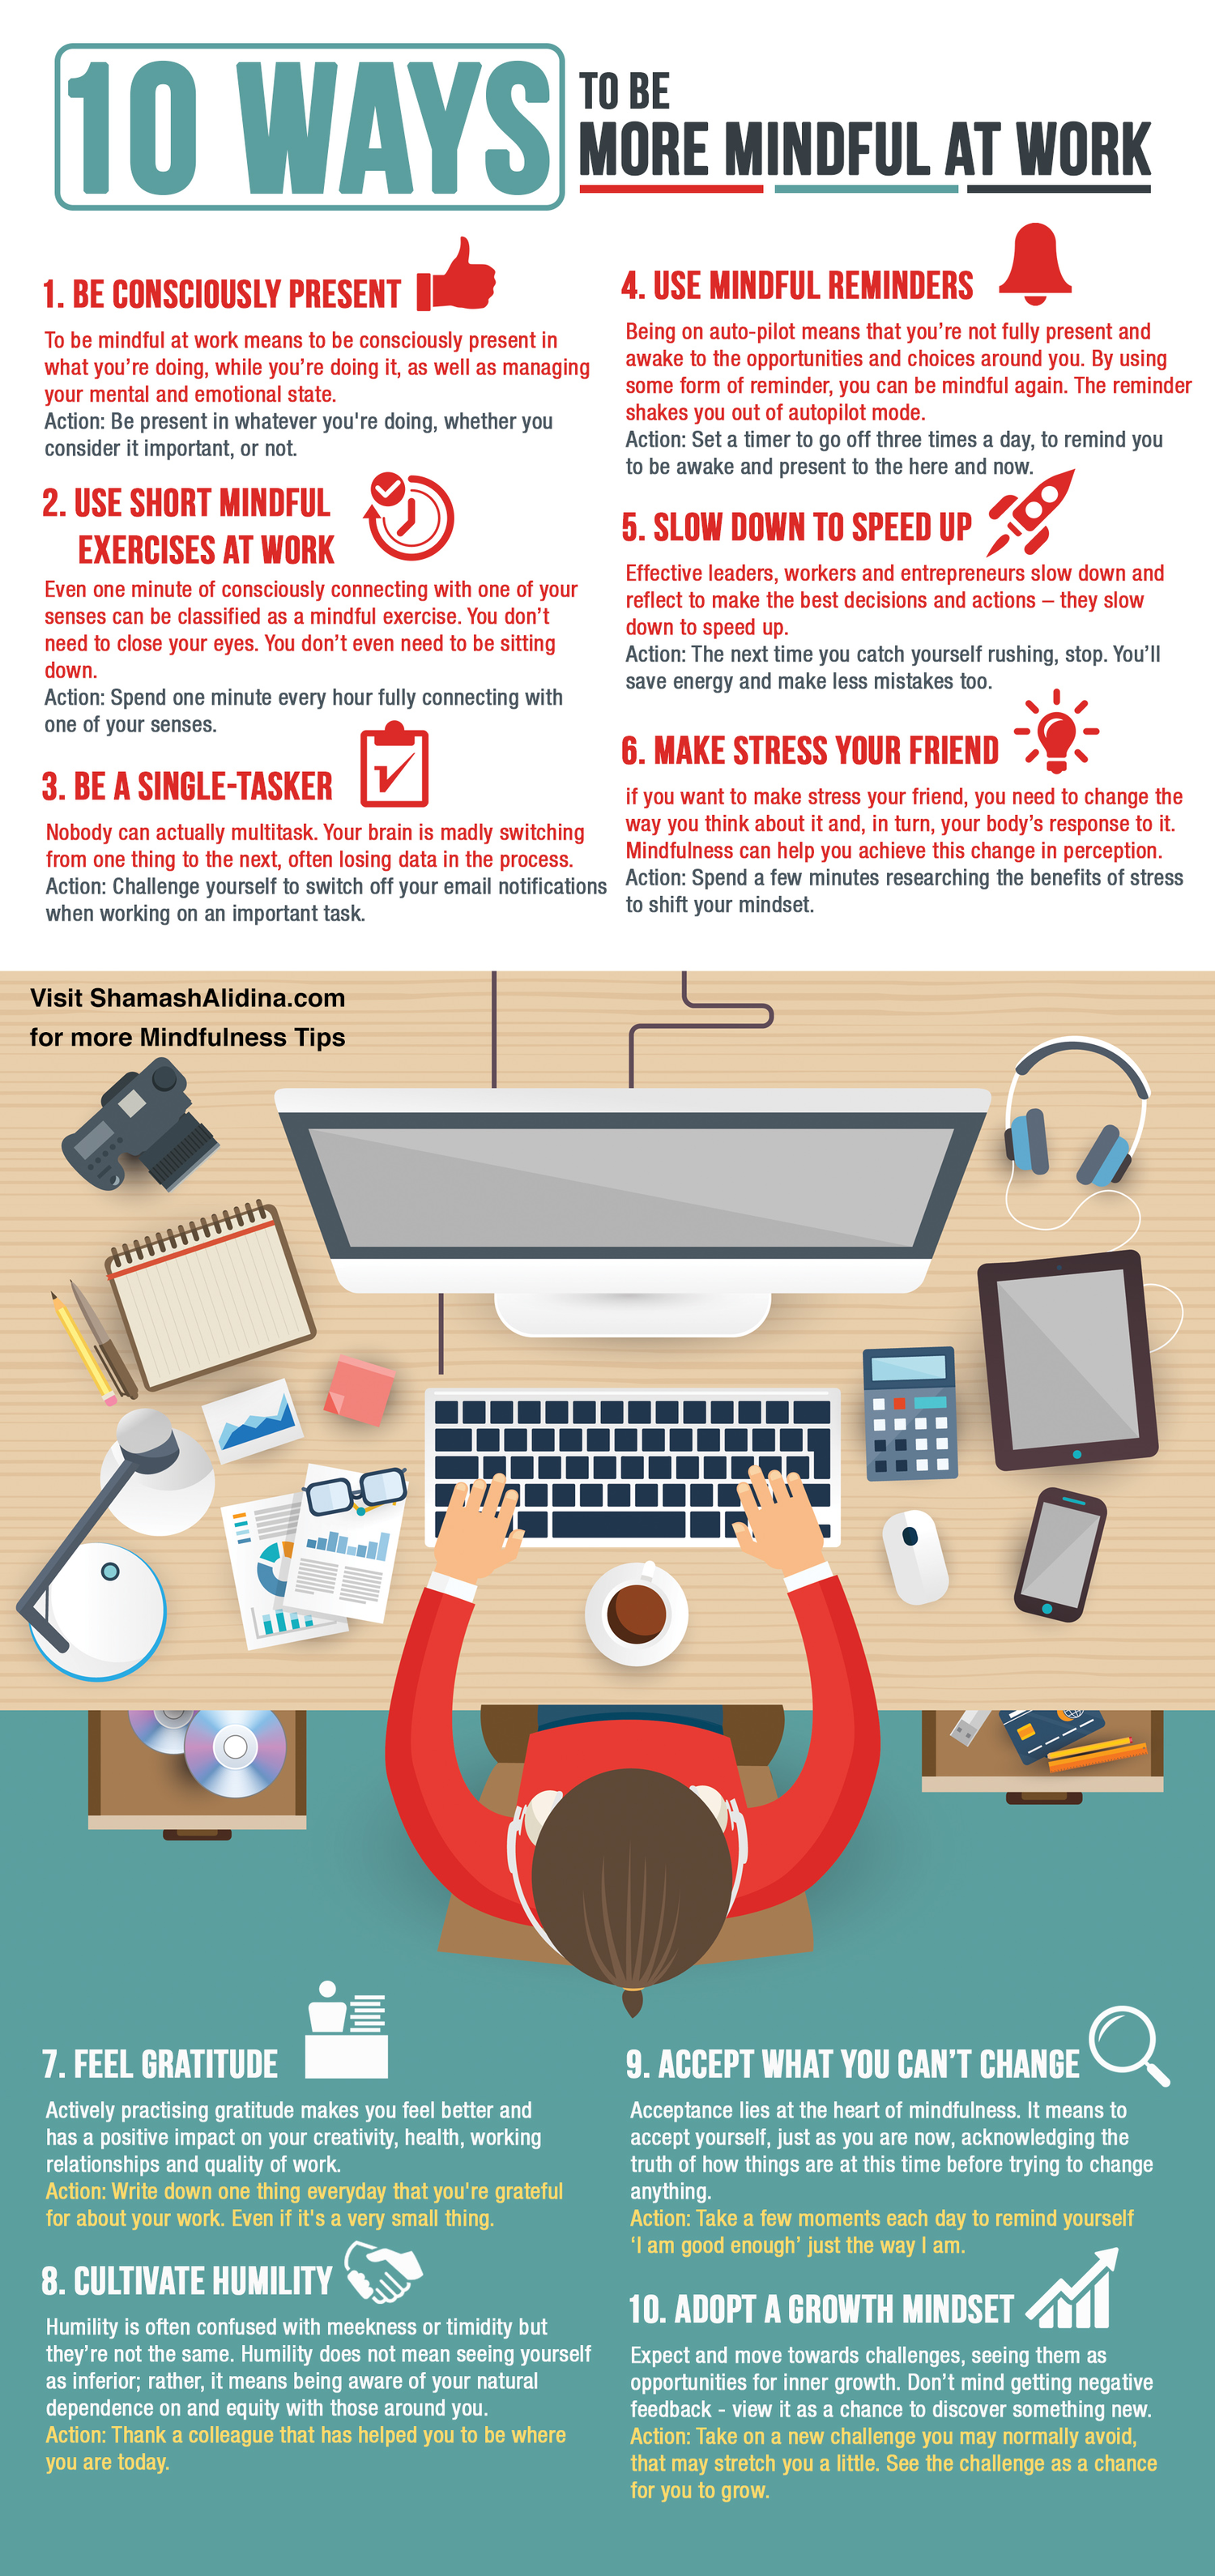 10 Kitchen And Home Decor Items Every 20 Something Needs: [Infographic] 10 Ways To Be More Mindful At Work